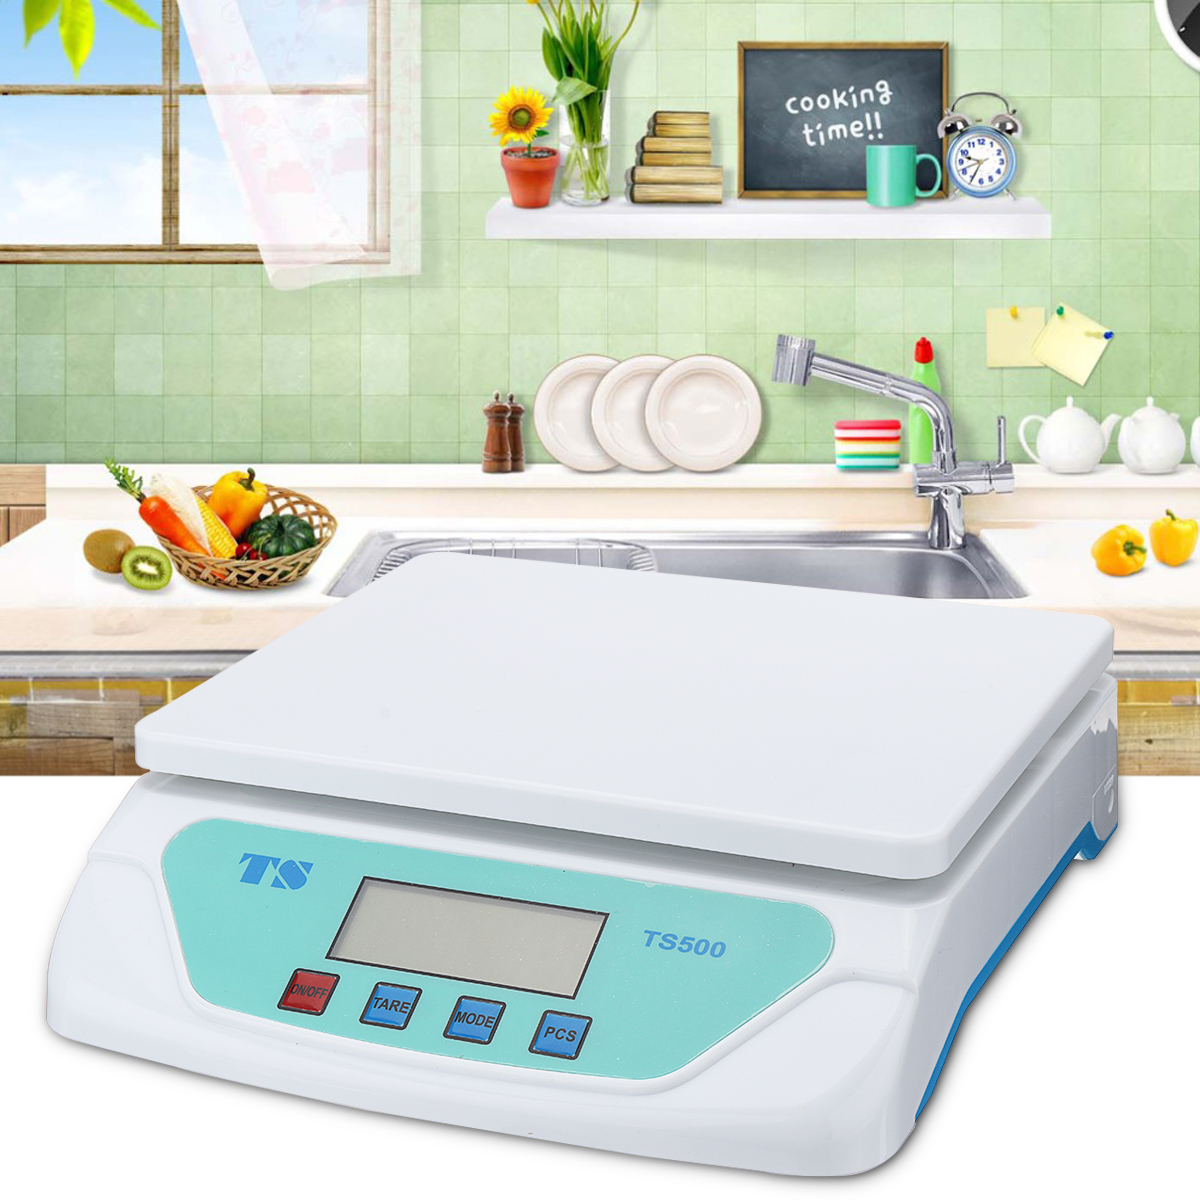 30kg electronic scales Weighing Kitchen Scales Grams Balance LCD Display universal for Home Electronic Balance Weight image